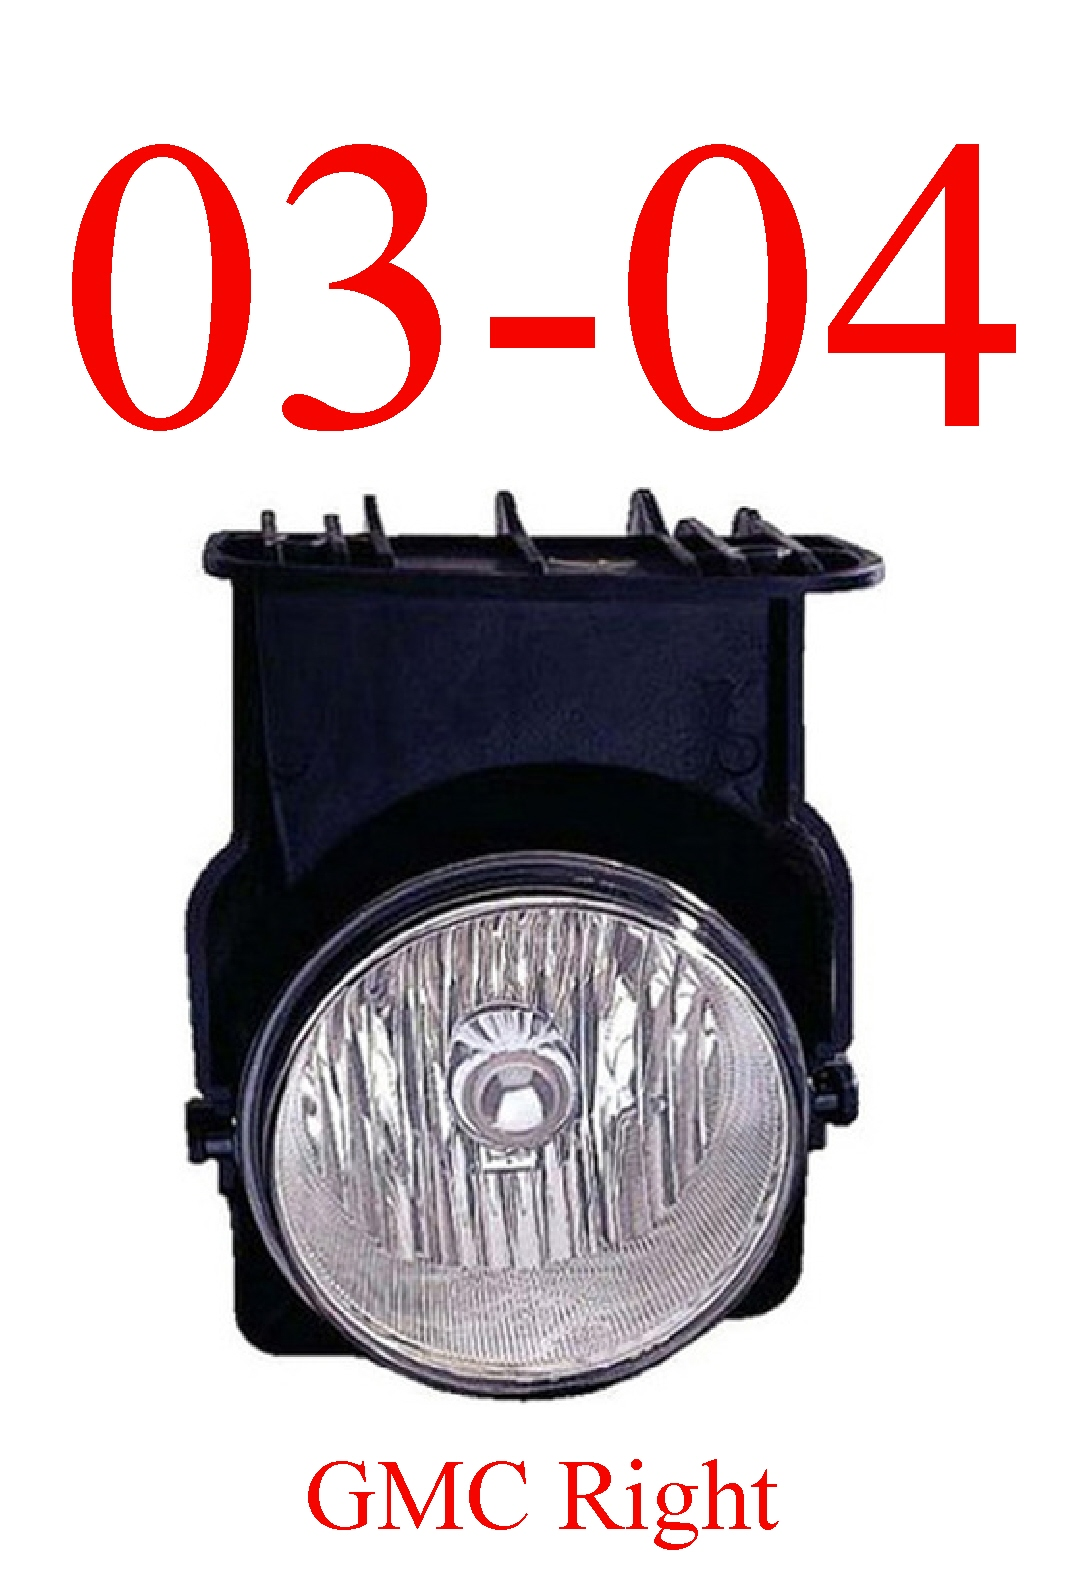 03-04 GMC Truck Right Fog Light Assembly